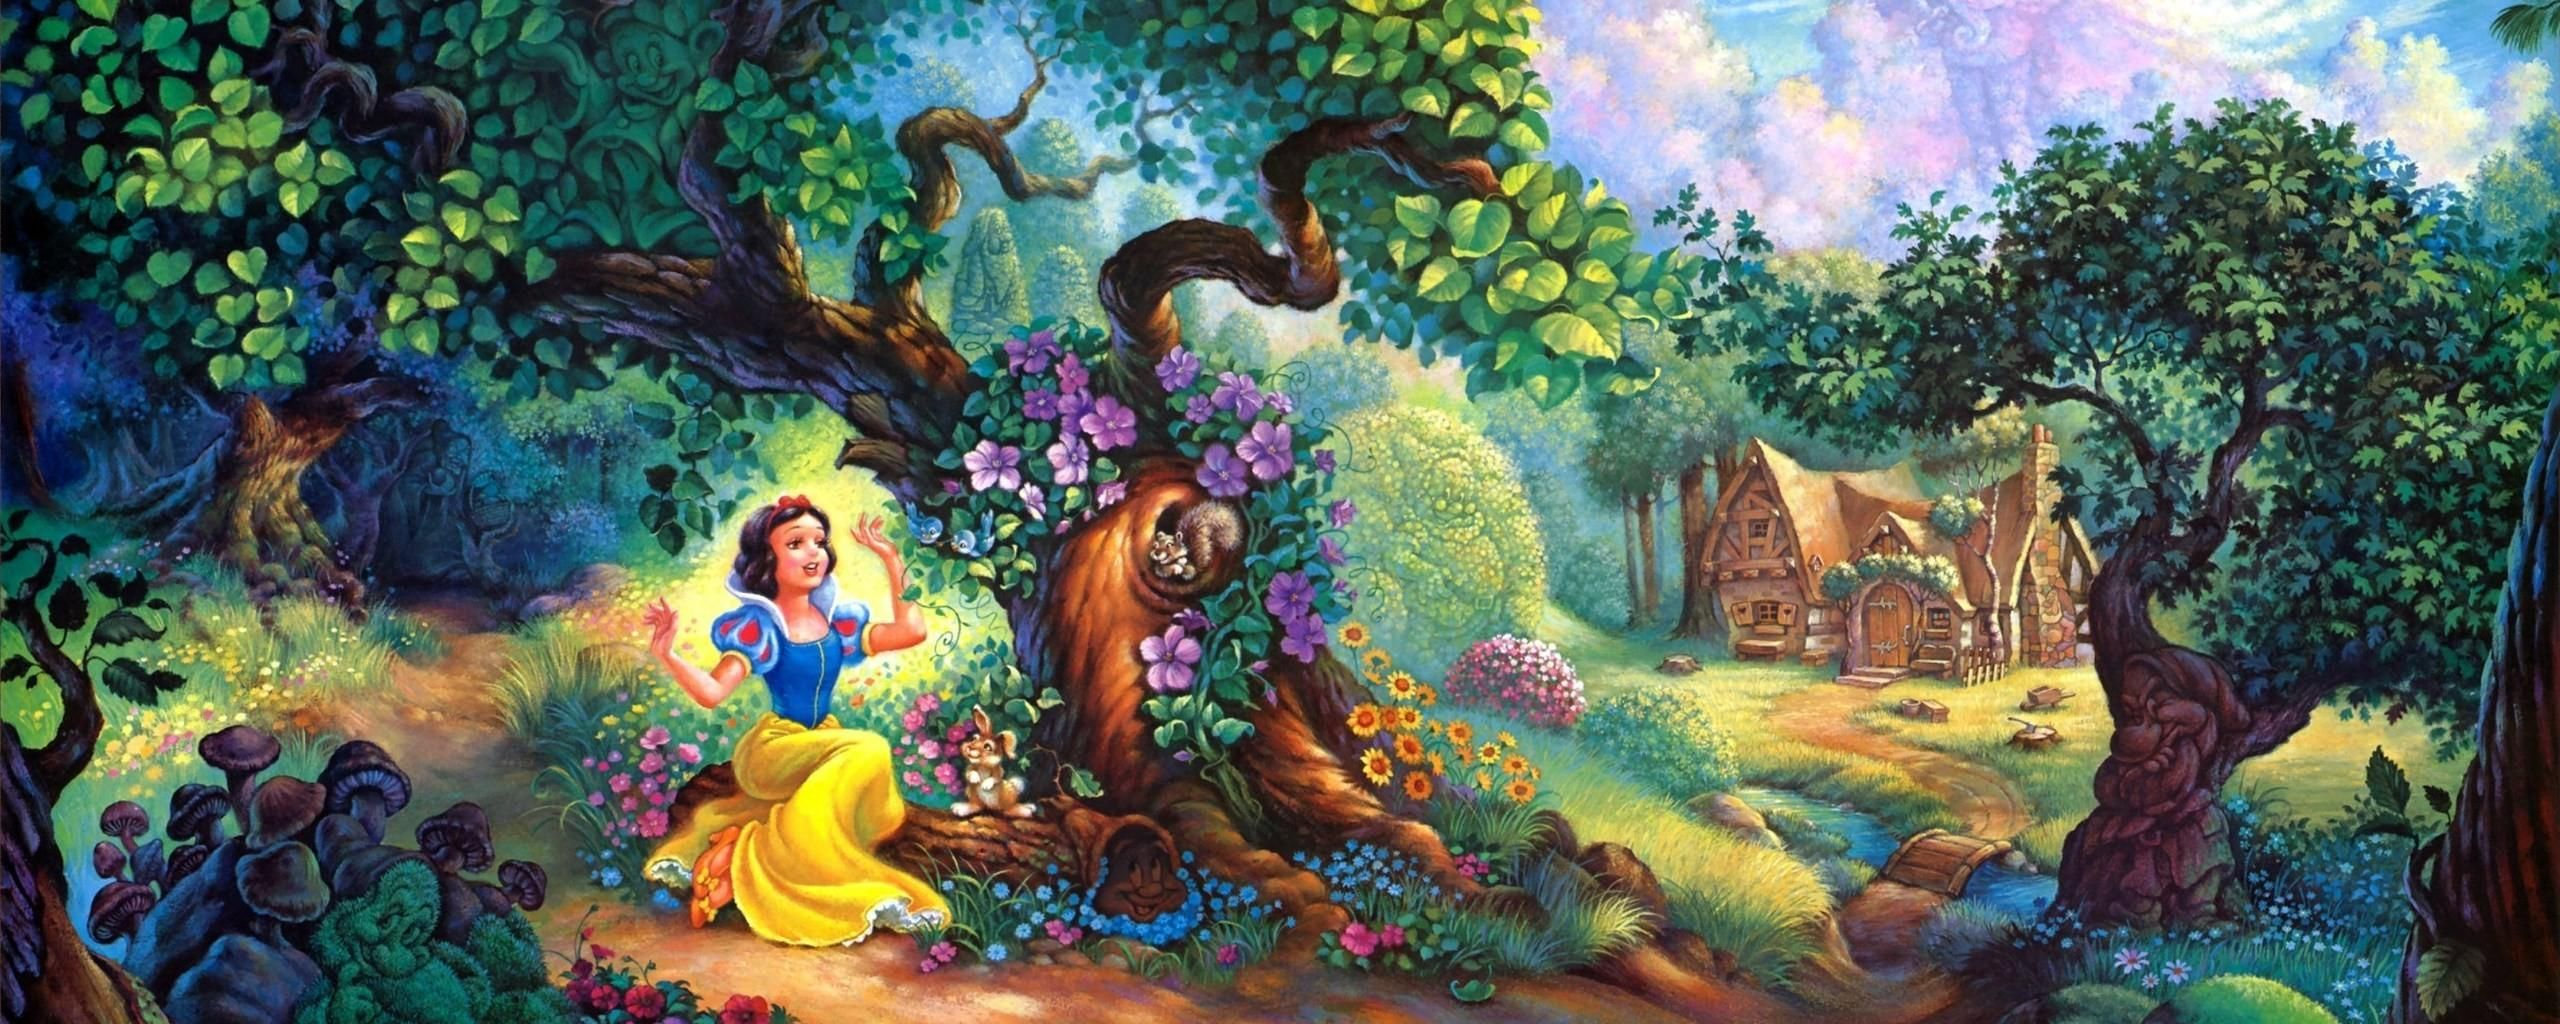 Forest Tom Dubois Painting Walt Disney Cartoon Wallpapers Hi